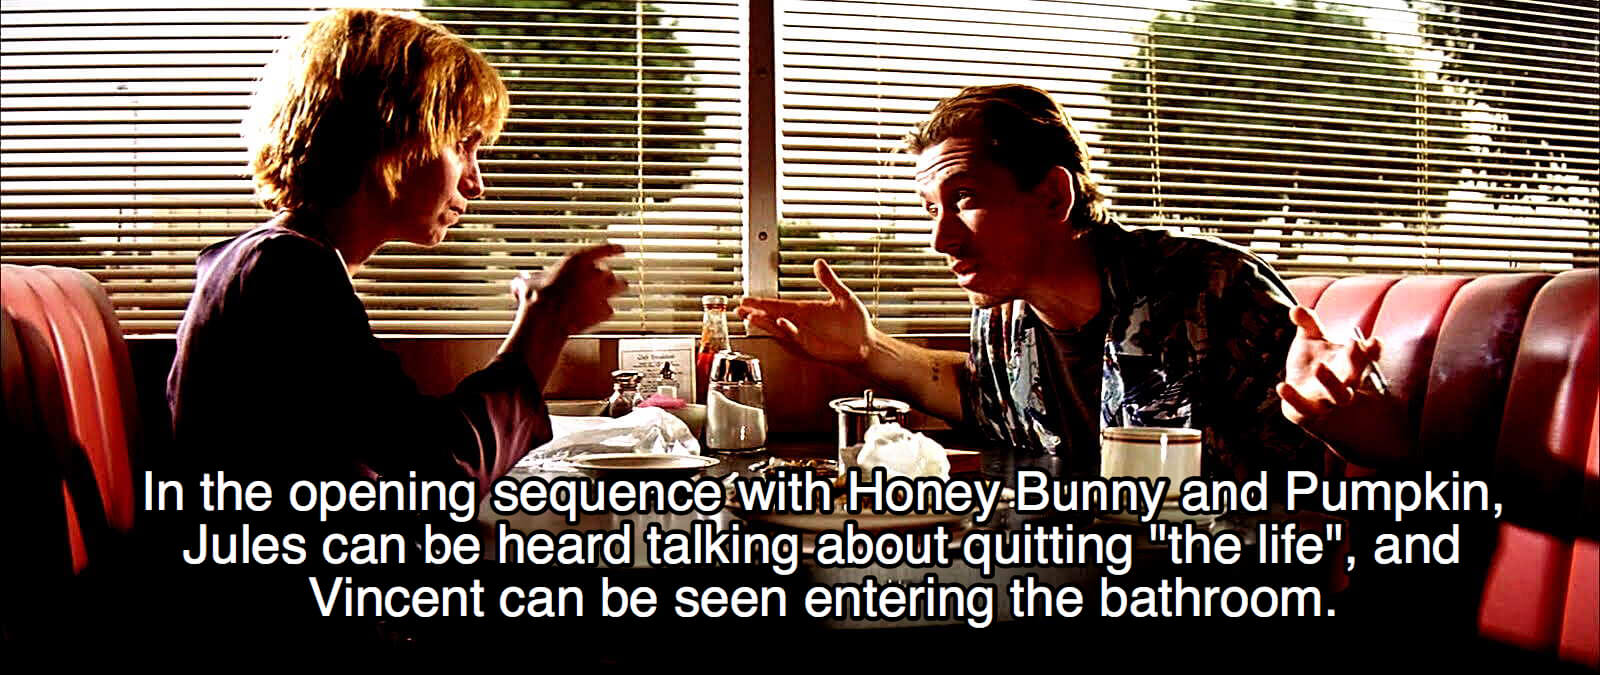 pulp fiction facts 26 (1)